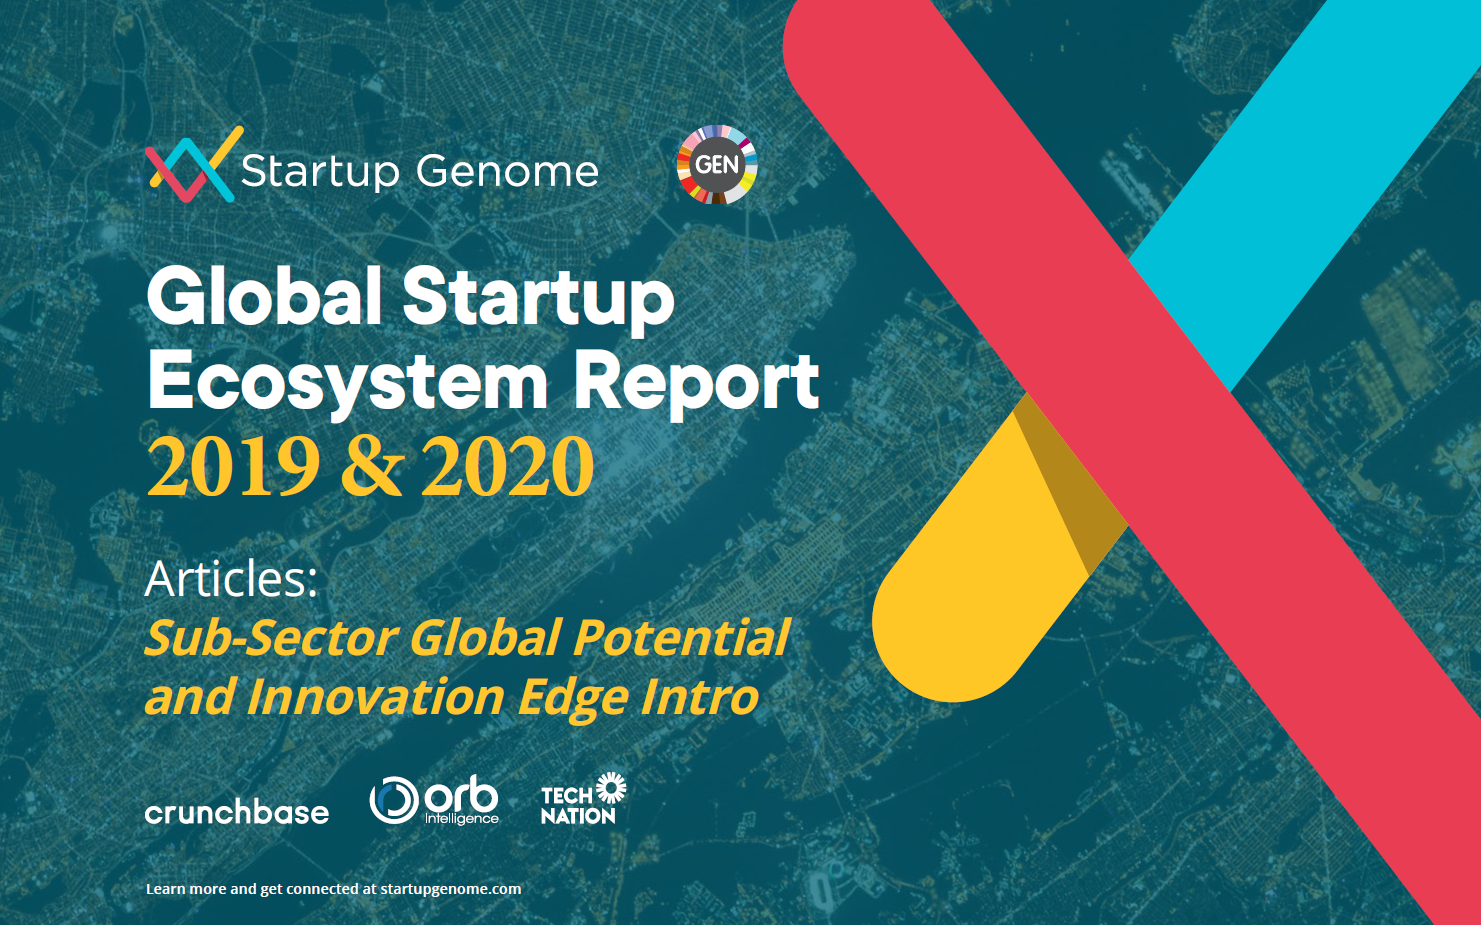 Sub-Sector Global Potential & Innovation Edge